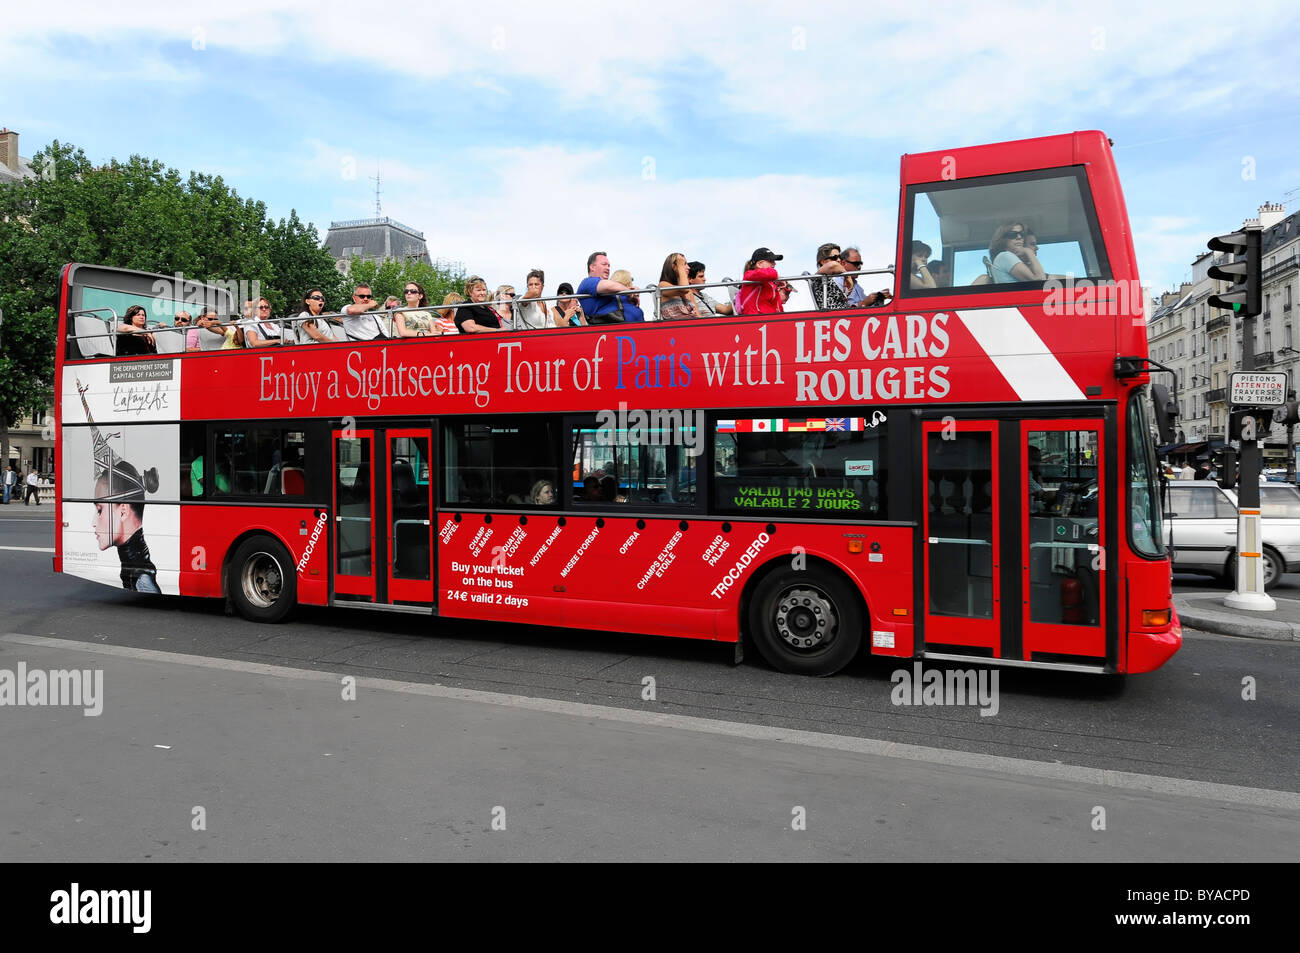 sightseeing tour by bus open top tour bus paris france europe stock photo royalty free. Black Bedroom Furniture Sets. Home Design Ideas